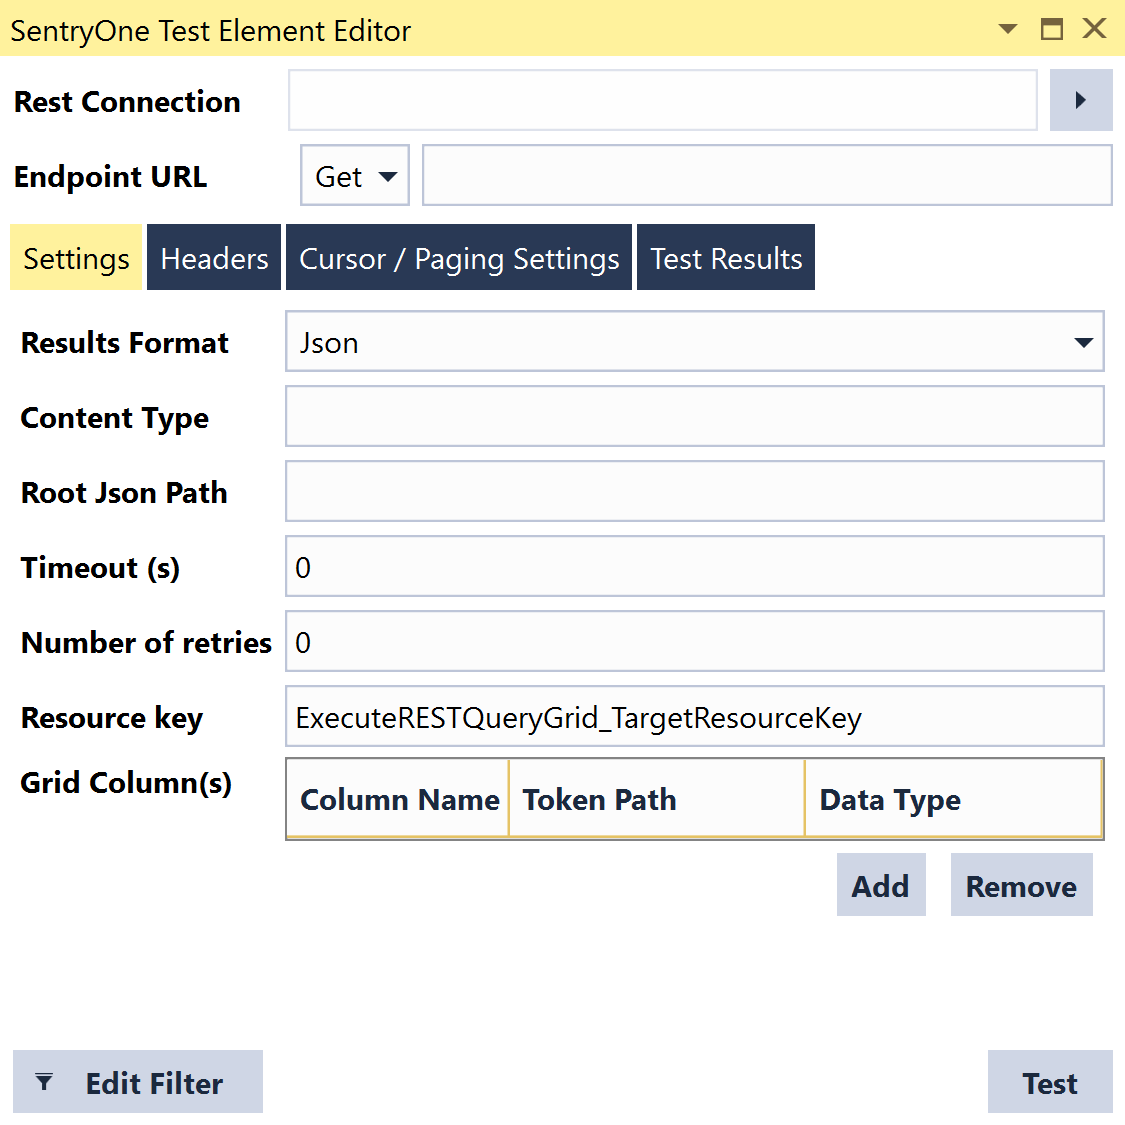 SentryOne Test Execute Rest Query Grid Settings